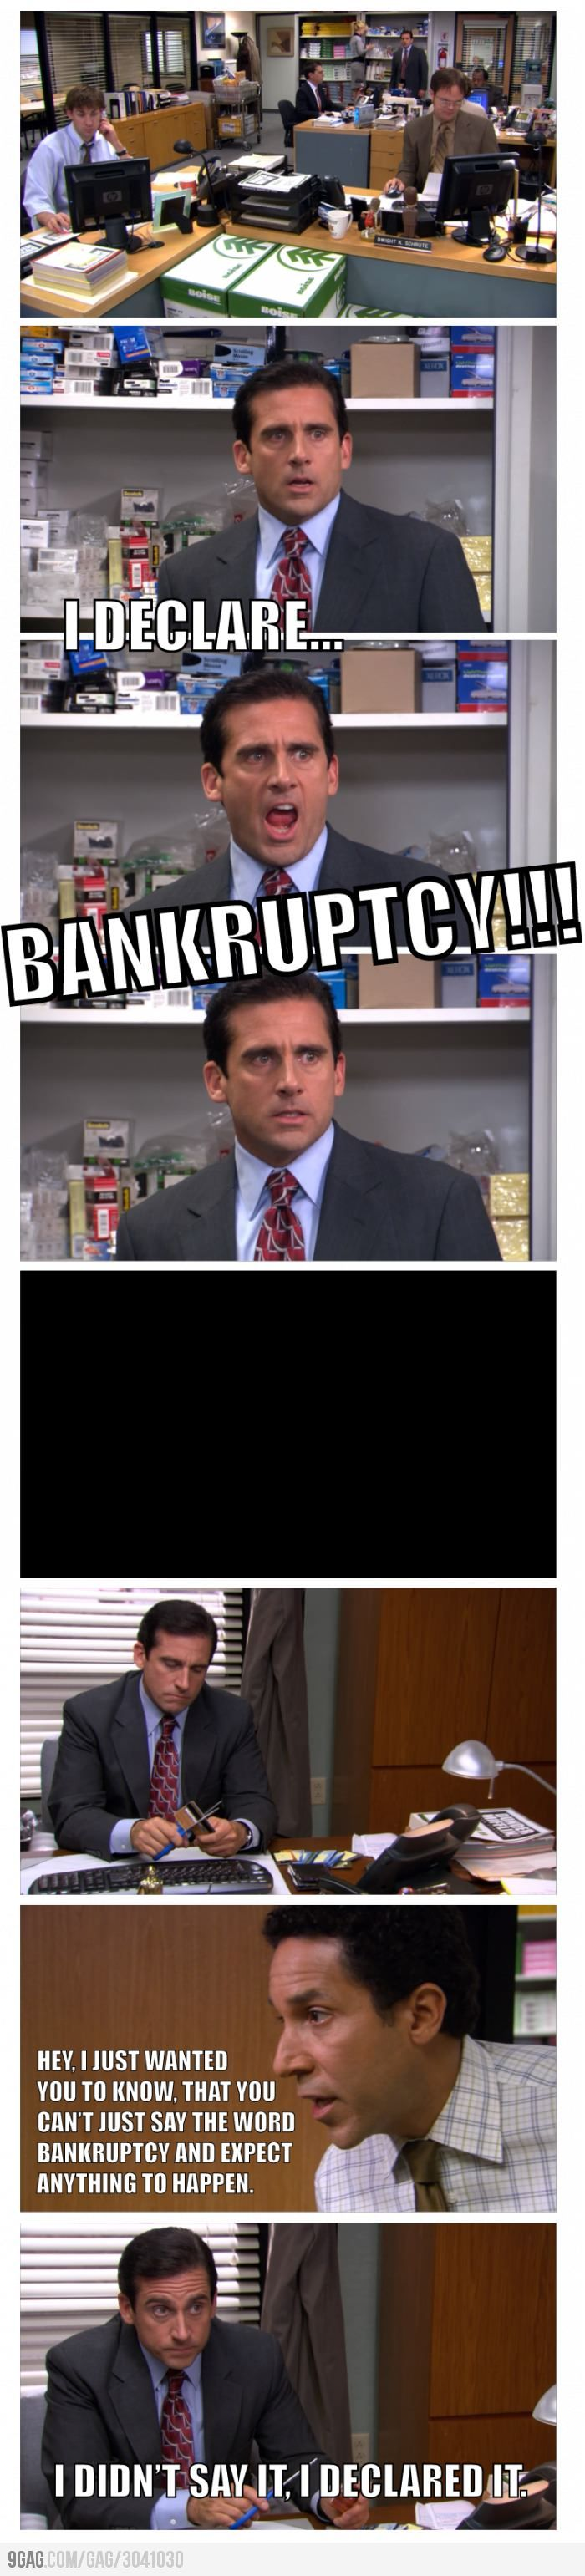 Michael Scott. The office